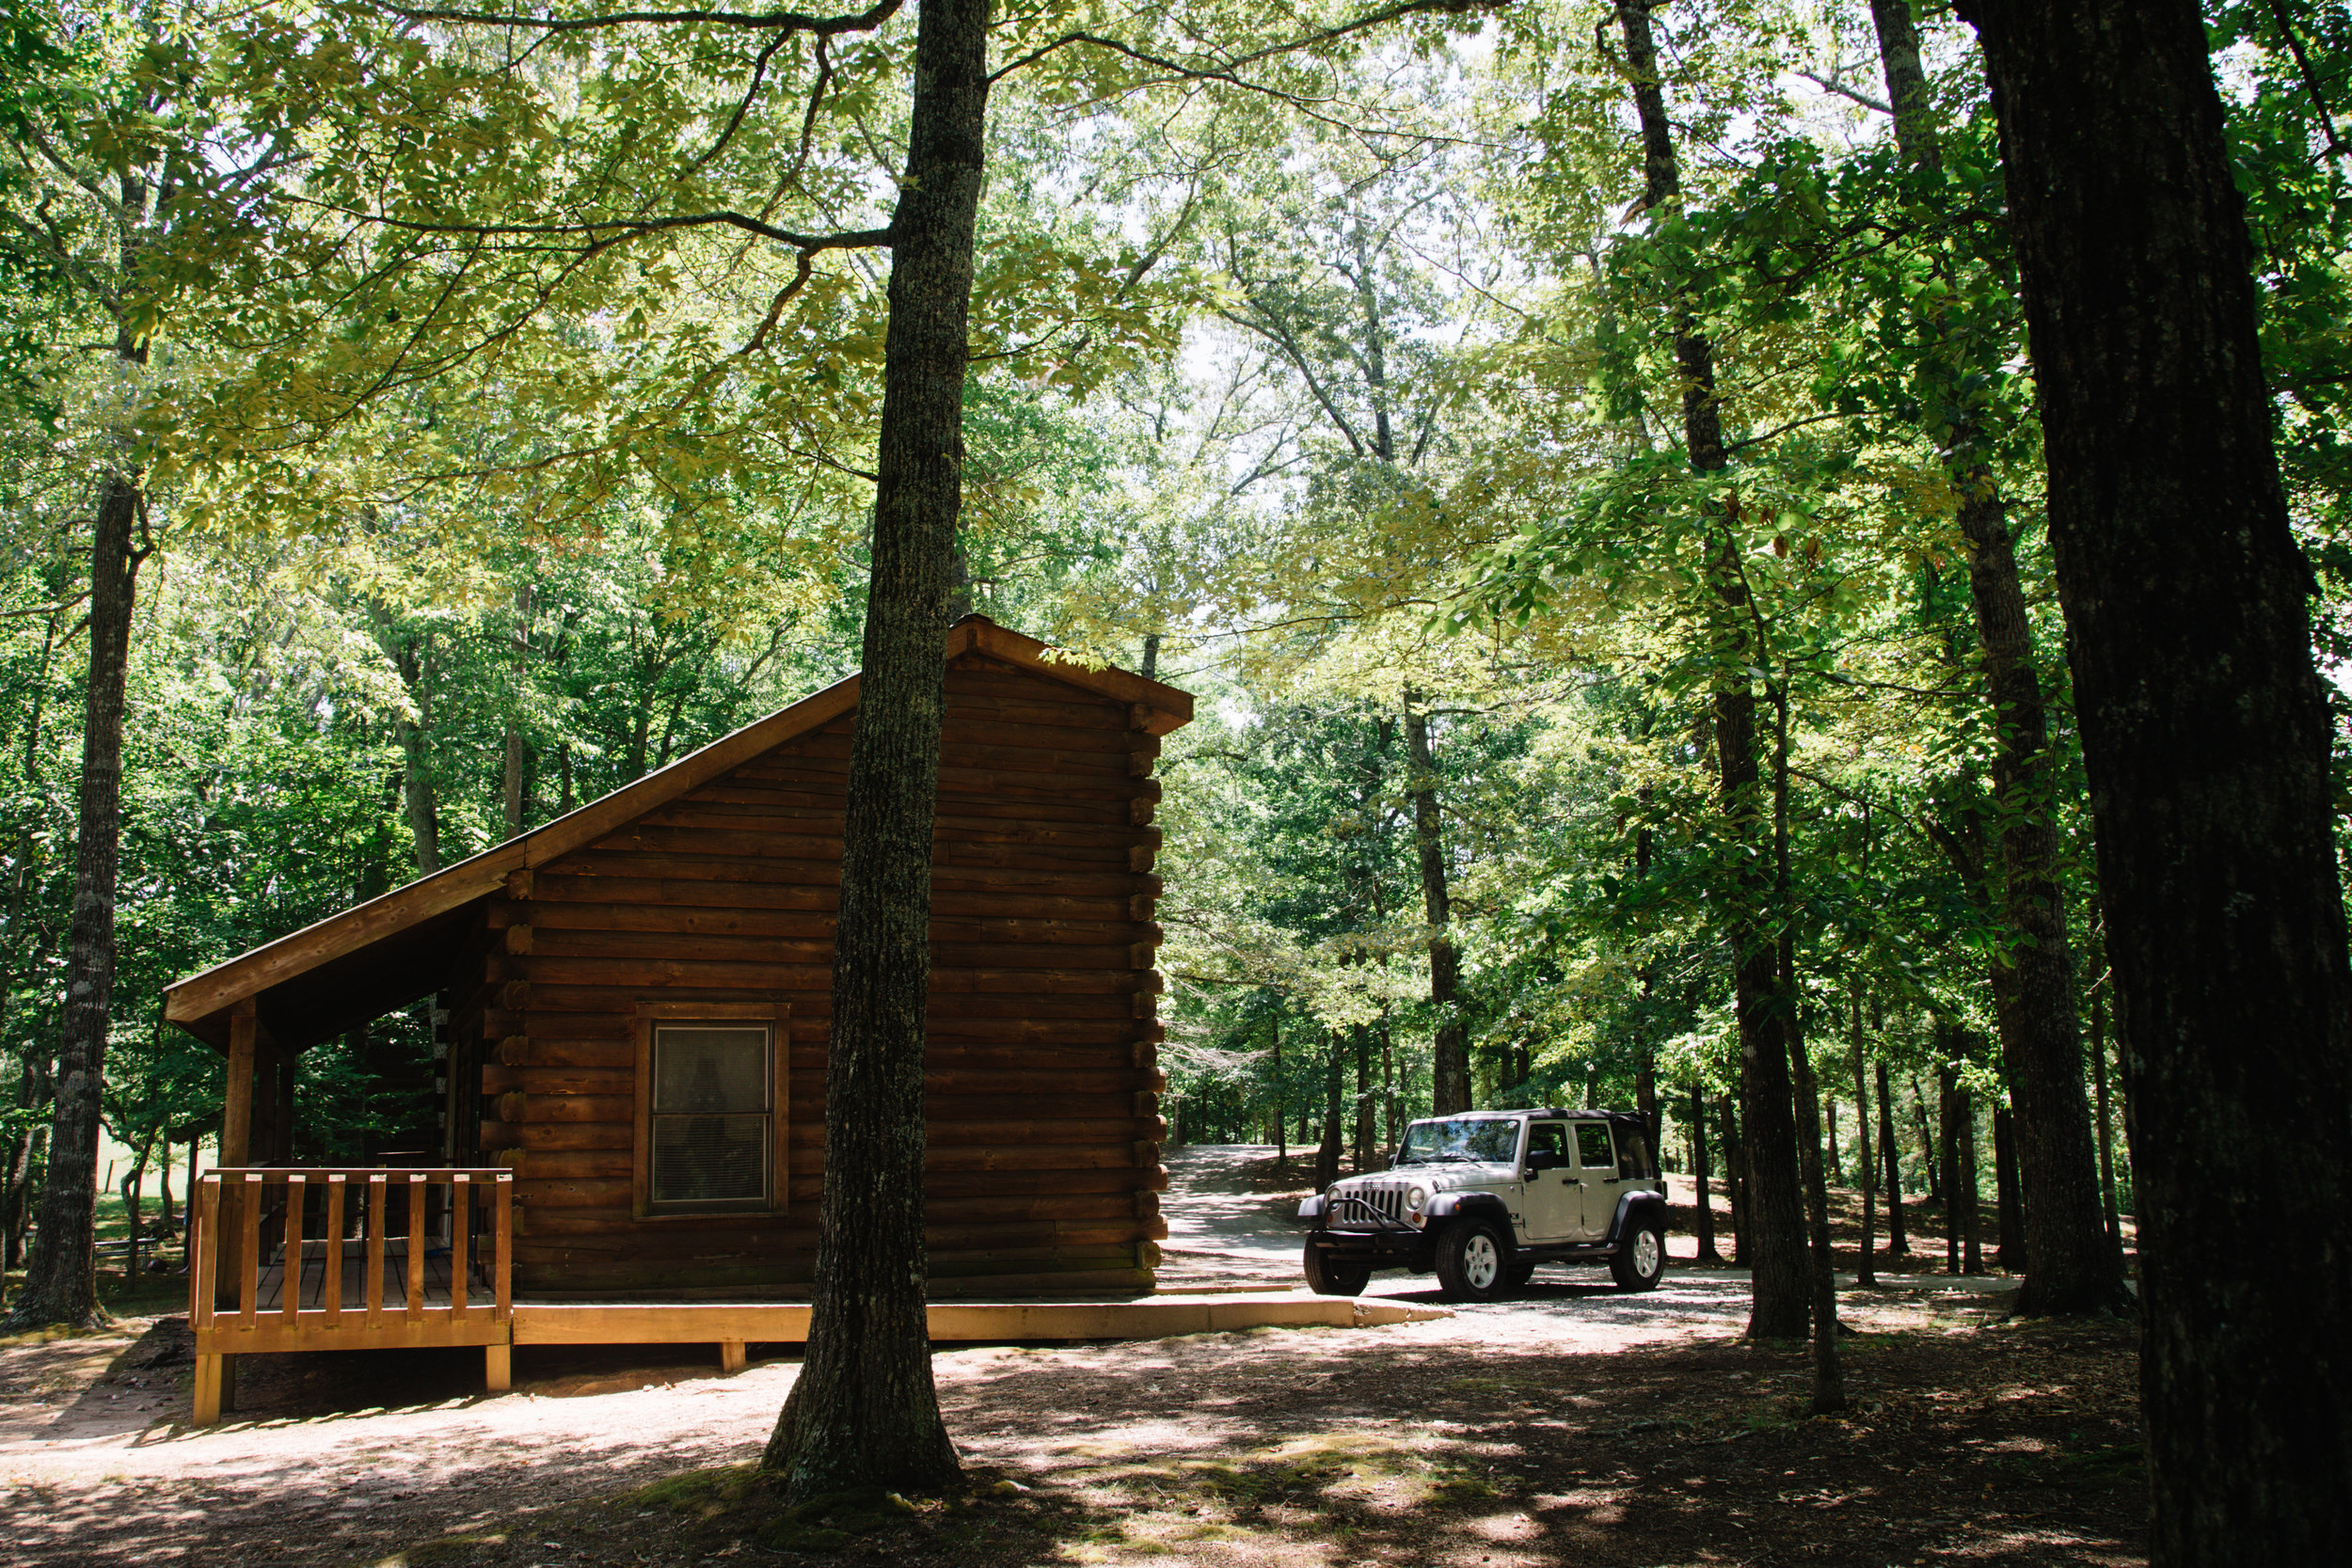 R Ranch in the Mountains has a beautiful set up with amenities for everyone. Fishing, Hiking, Swimming... It has it all in the peace and quiet of the Chattahoochee.